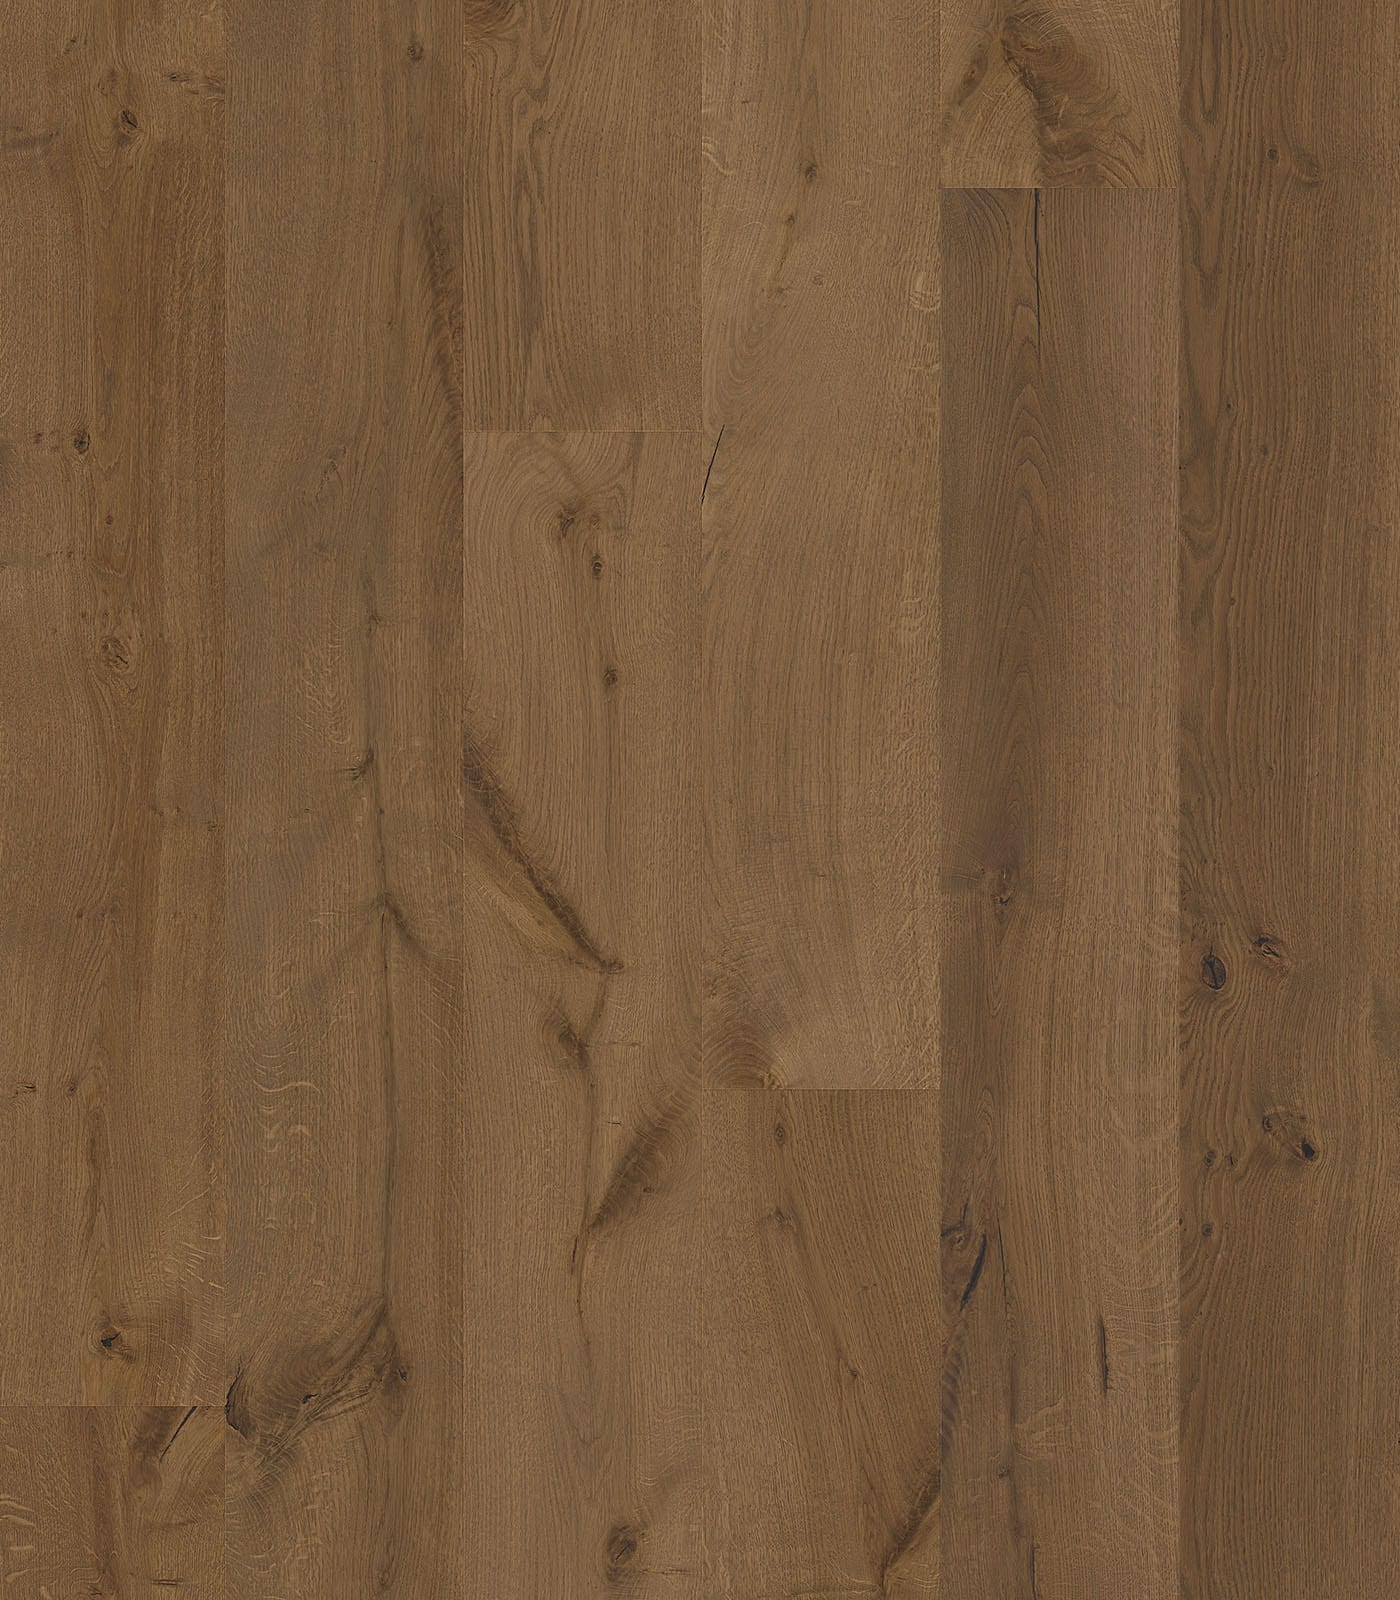 Bermuda-Lifestyle Collection-European Oak floors-flat